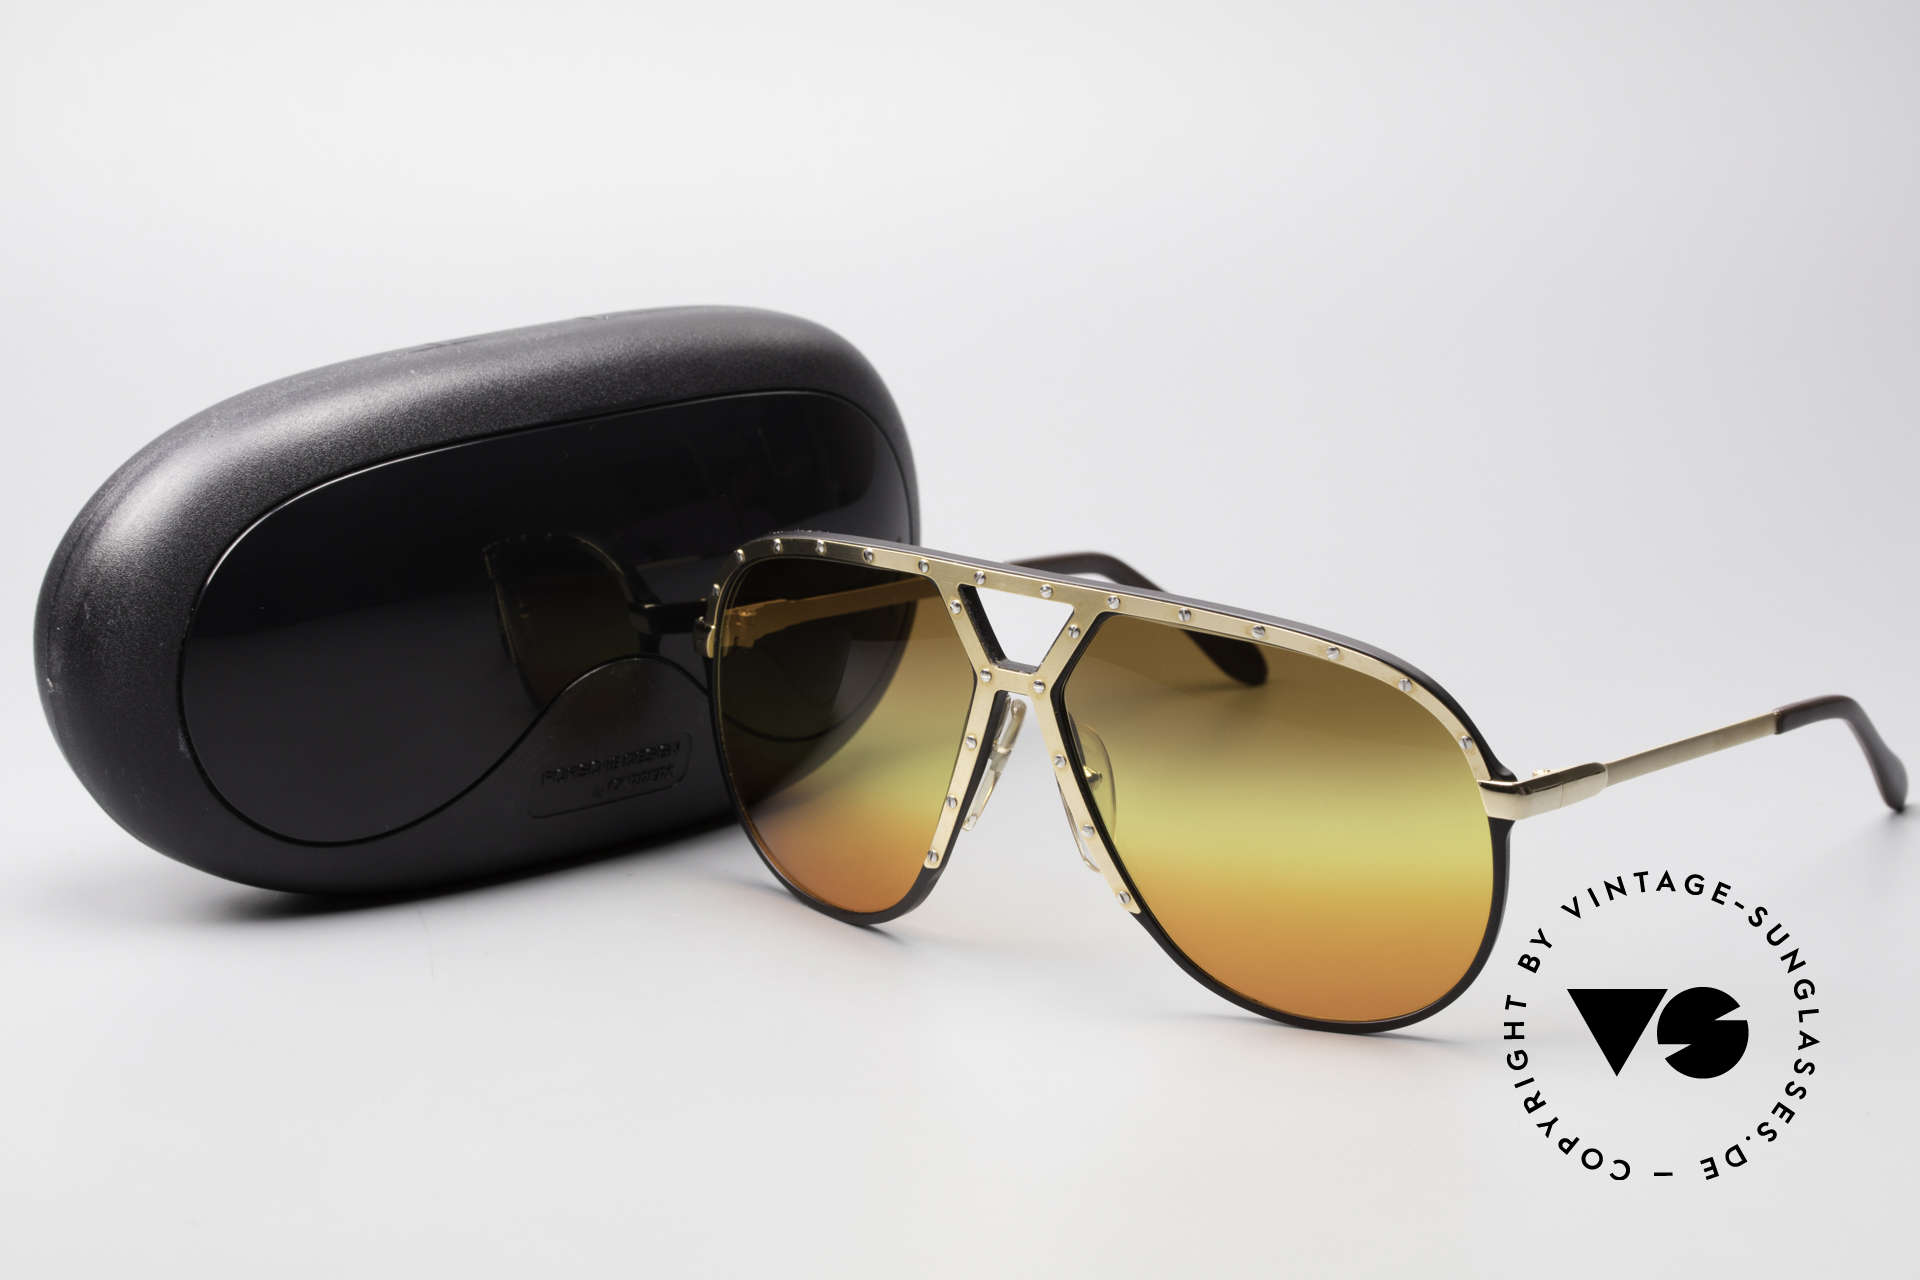 Alpina M1 80's Sunglasses Customized, Size: large, Made for Men